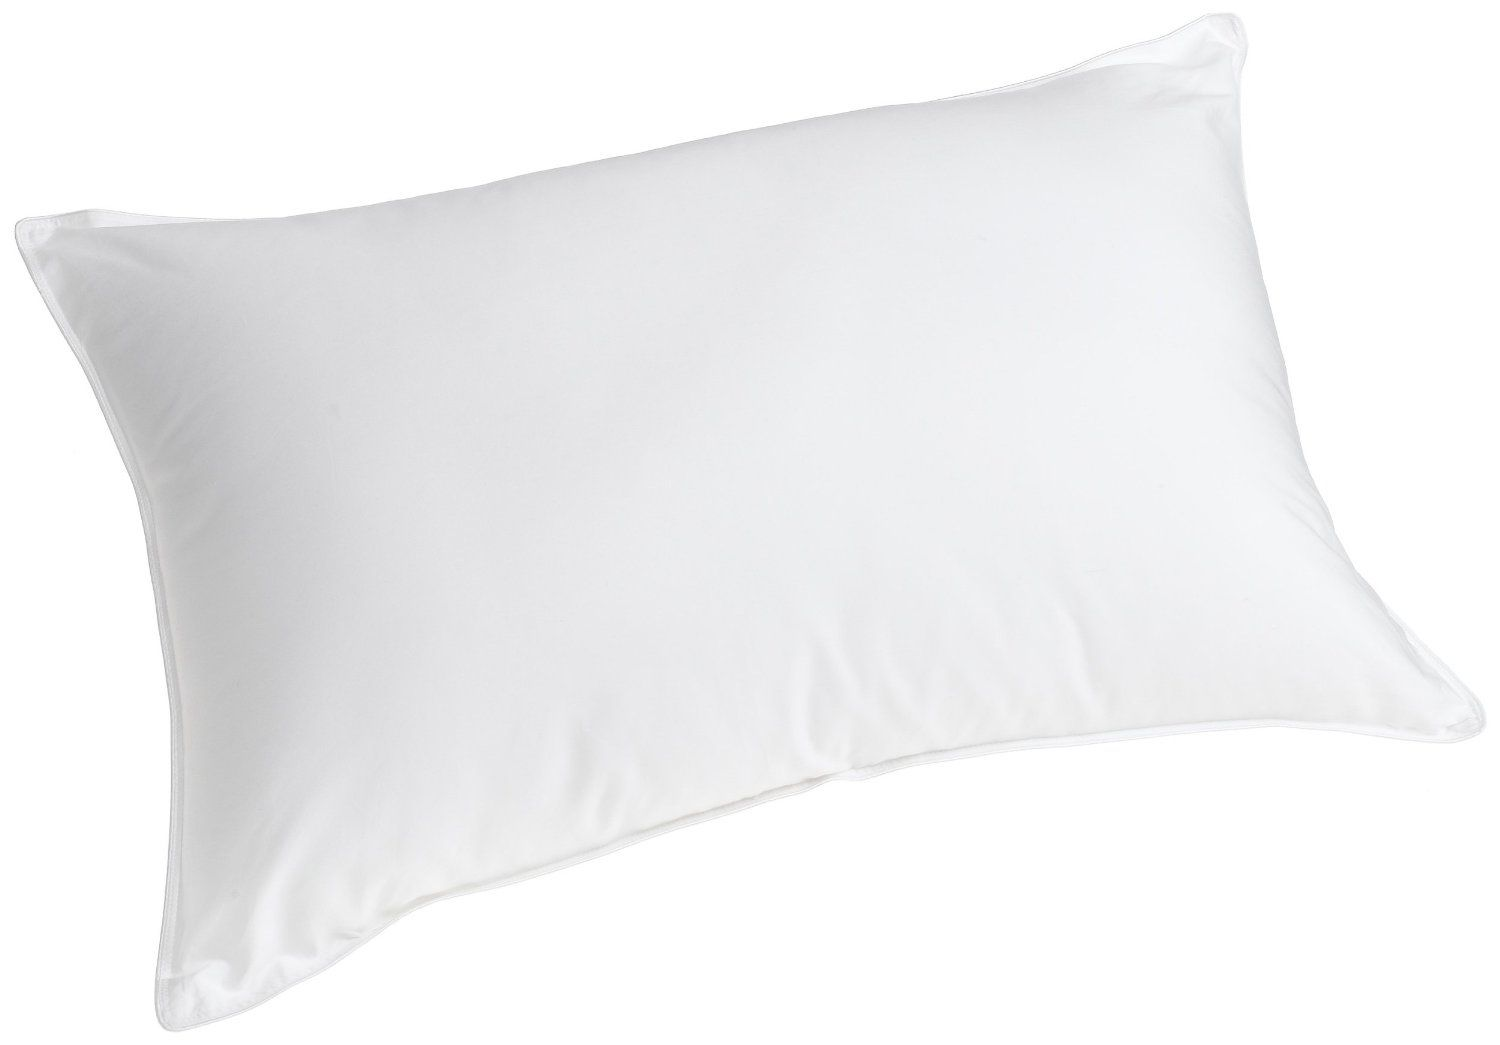 the most popular types of pillows